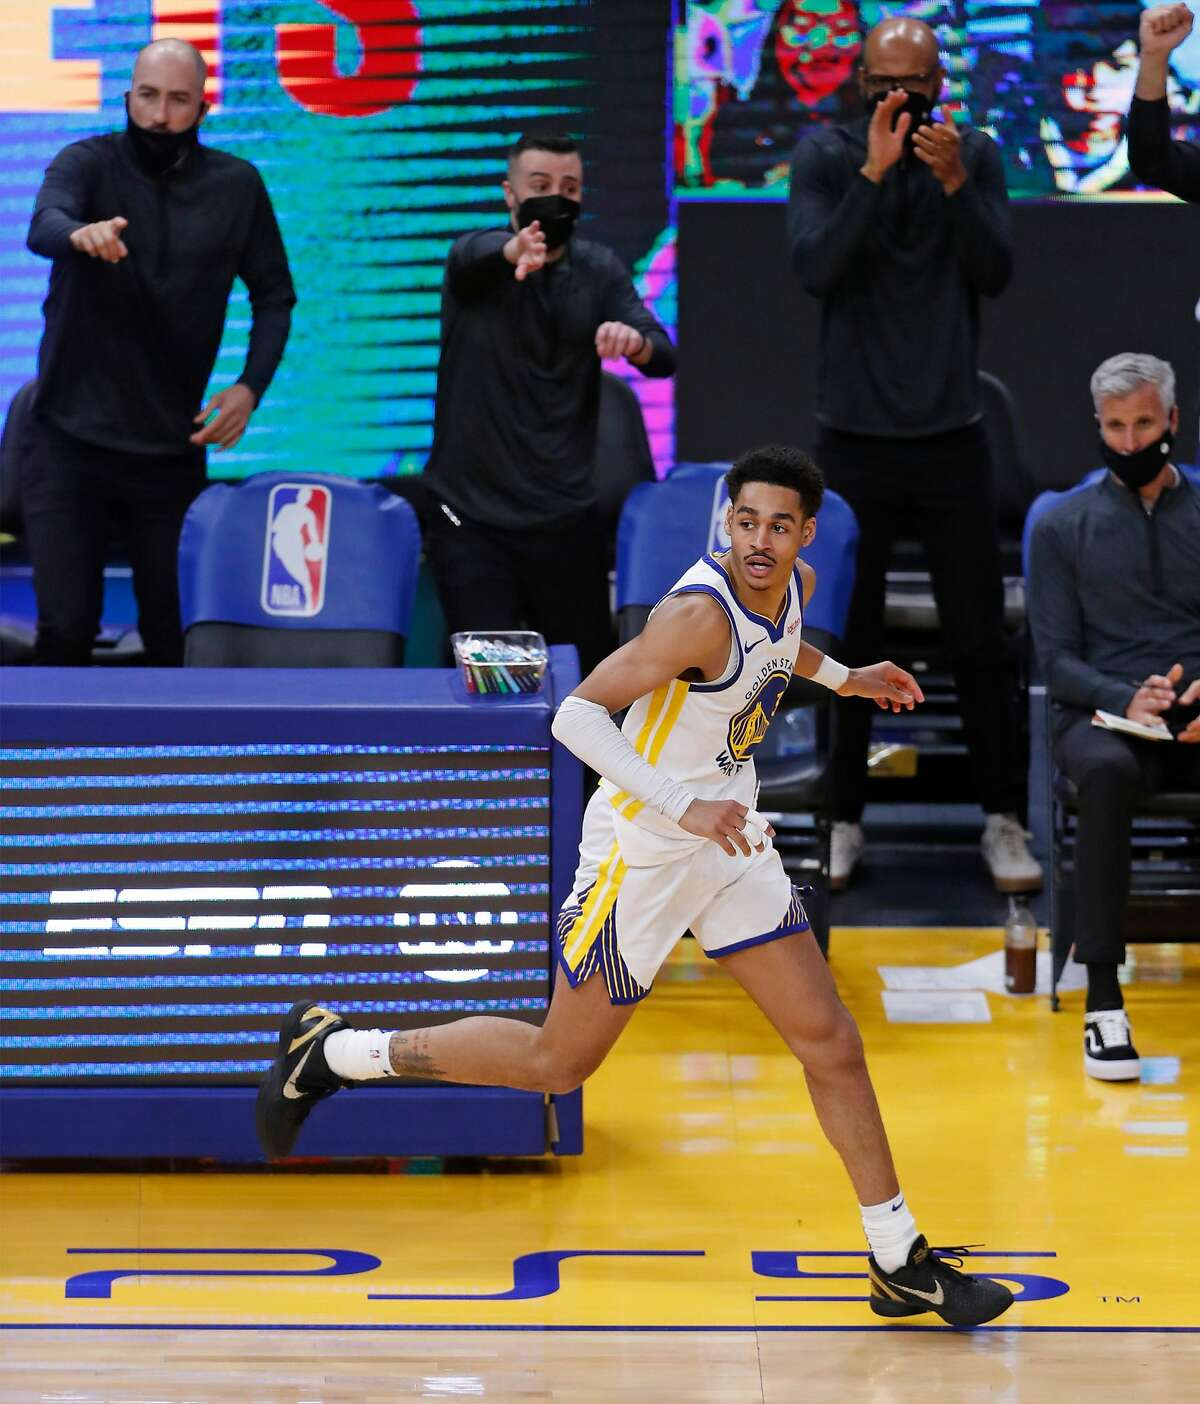 Golden State Warriors' Jordan Poole heads up court after hitting a 3-pointer against Memphis Grizzlies in 3rd quarter during NBA game at Chase Center in San Francisco, Calif., on Sunday, May 16, 2021.